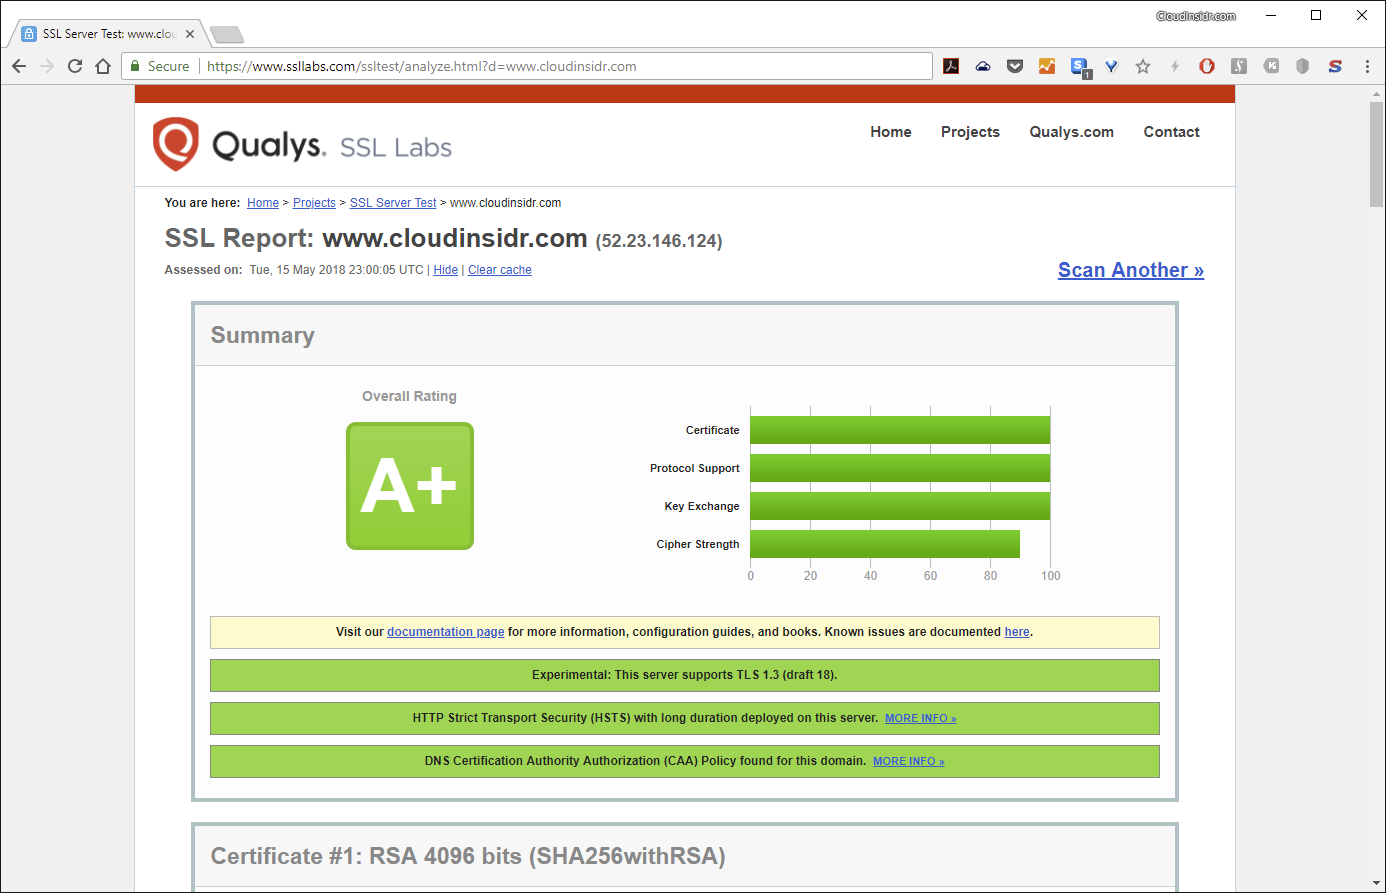 CloudInsidr on Qualys SSL Labs